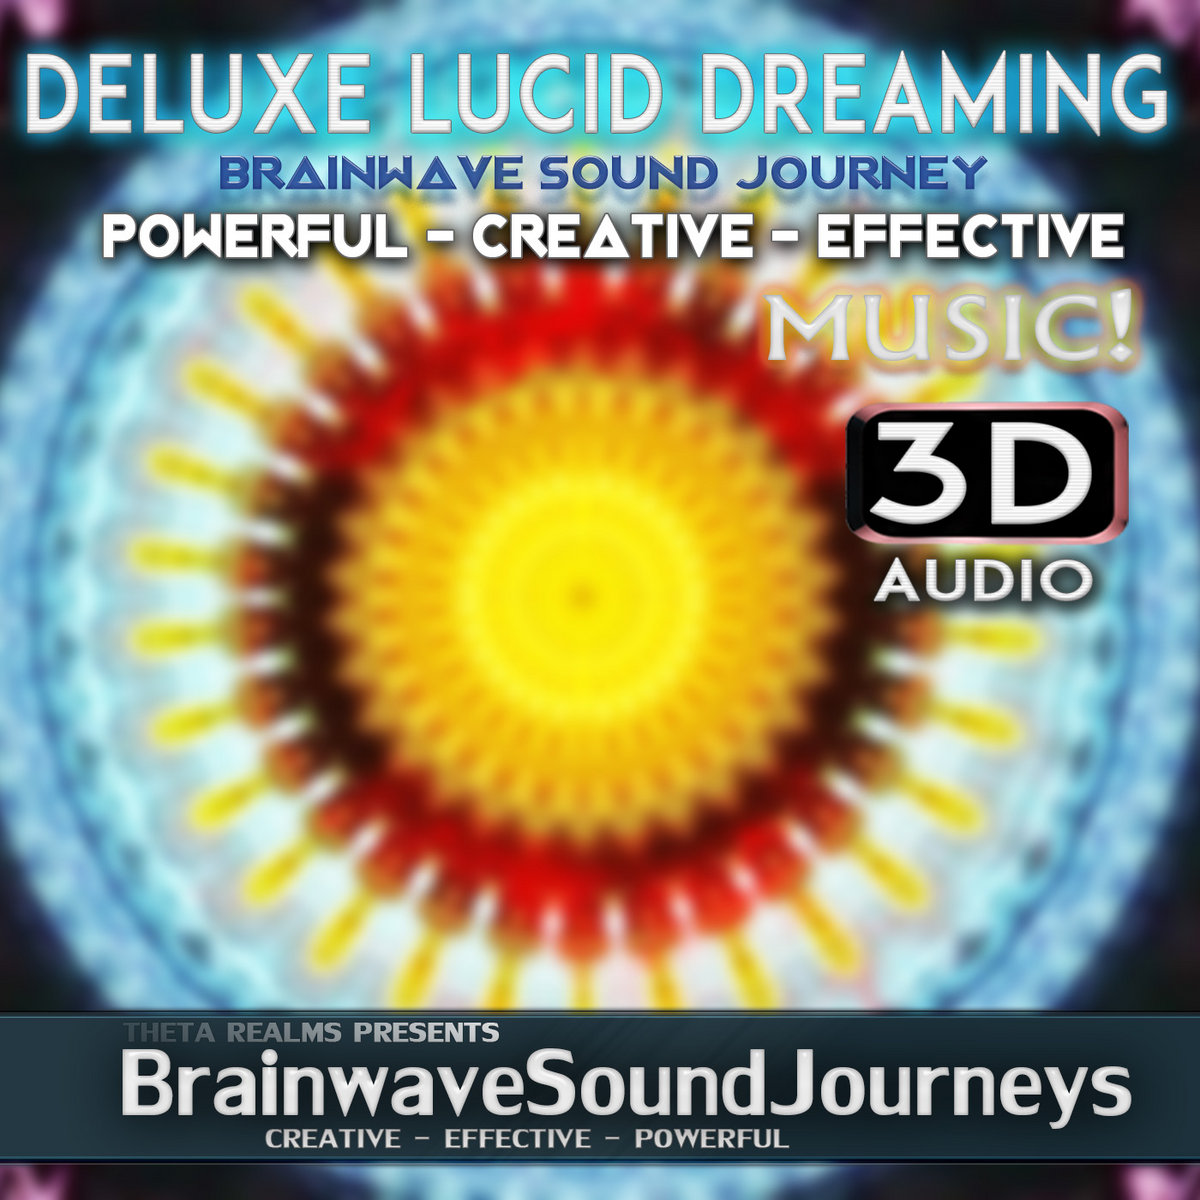 3 Hour LUCID DREAM Deluxe!!! Powerful 3D Music for Meditation +